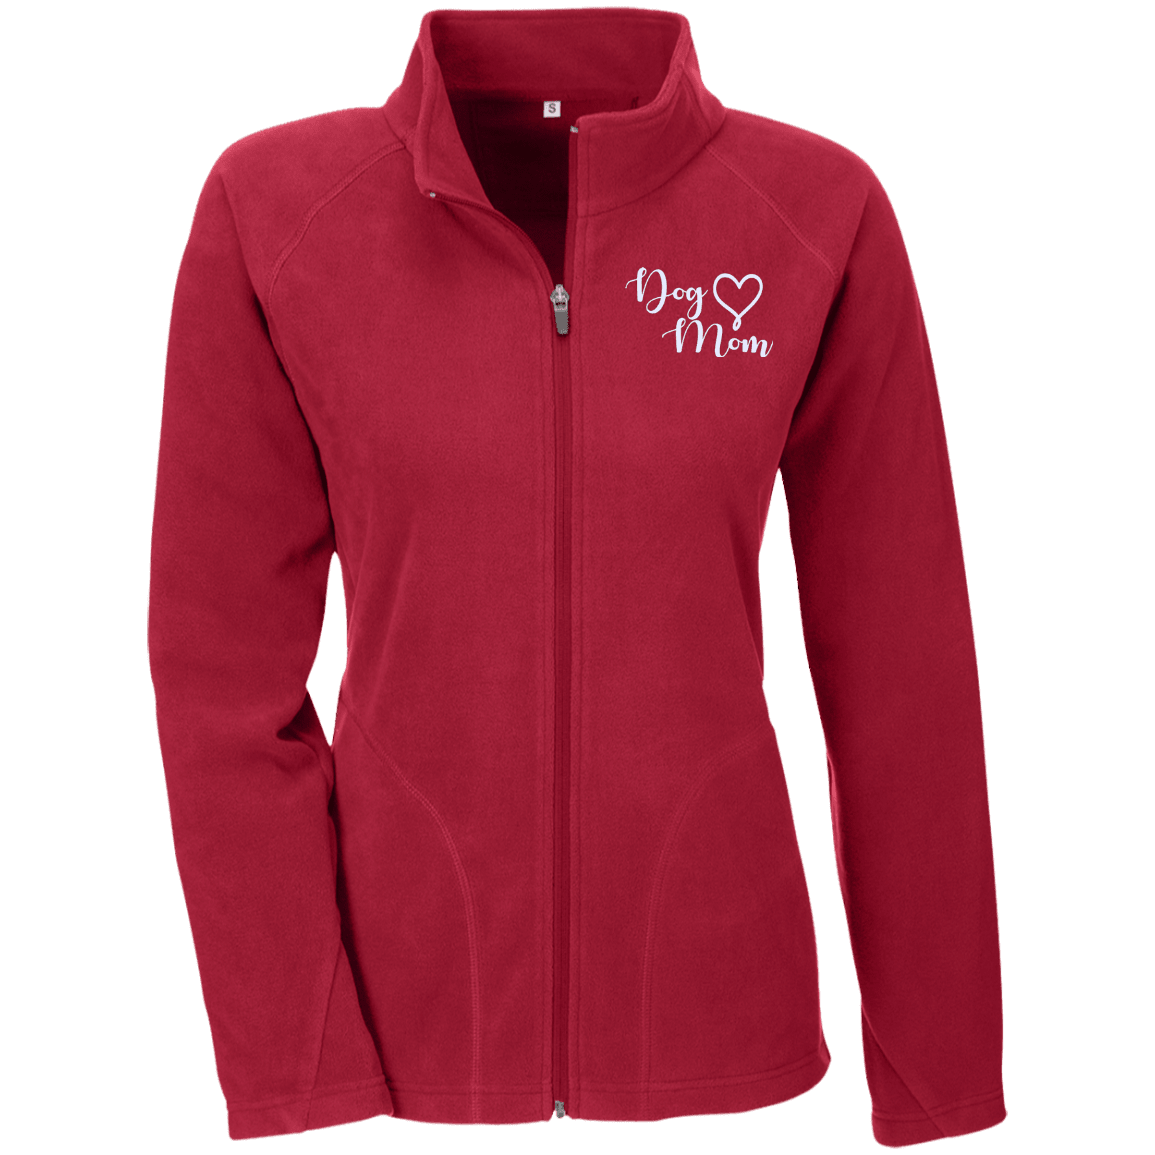 Dog Mom Wht Prnt - TT90W Team 365 Ladies' Microfleece, Jackets | Pit Bull T Shirts, Hoodies and more | Little Pit Shop